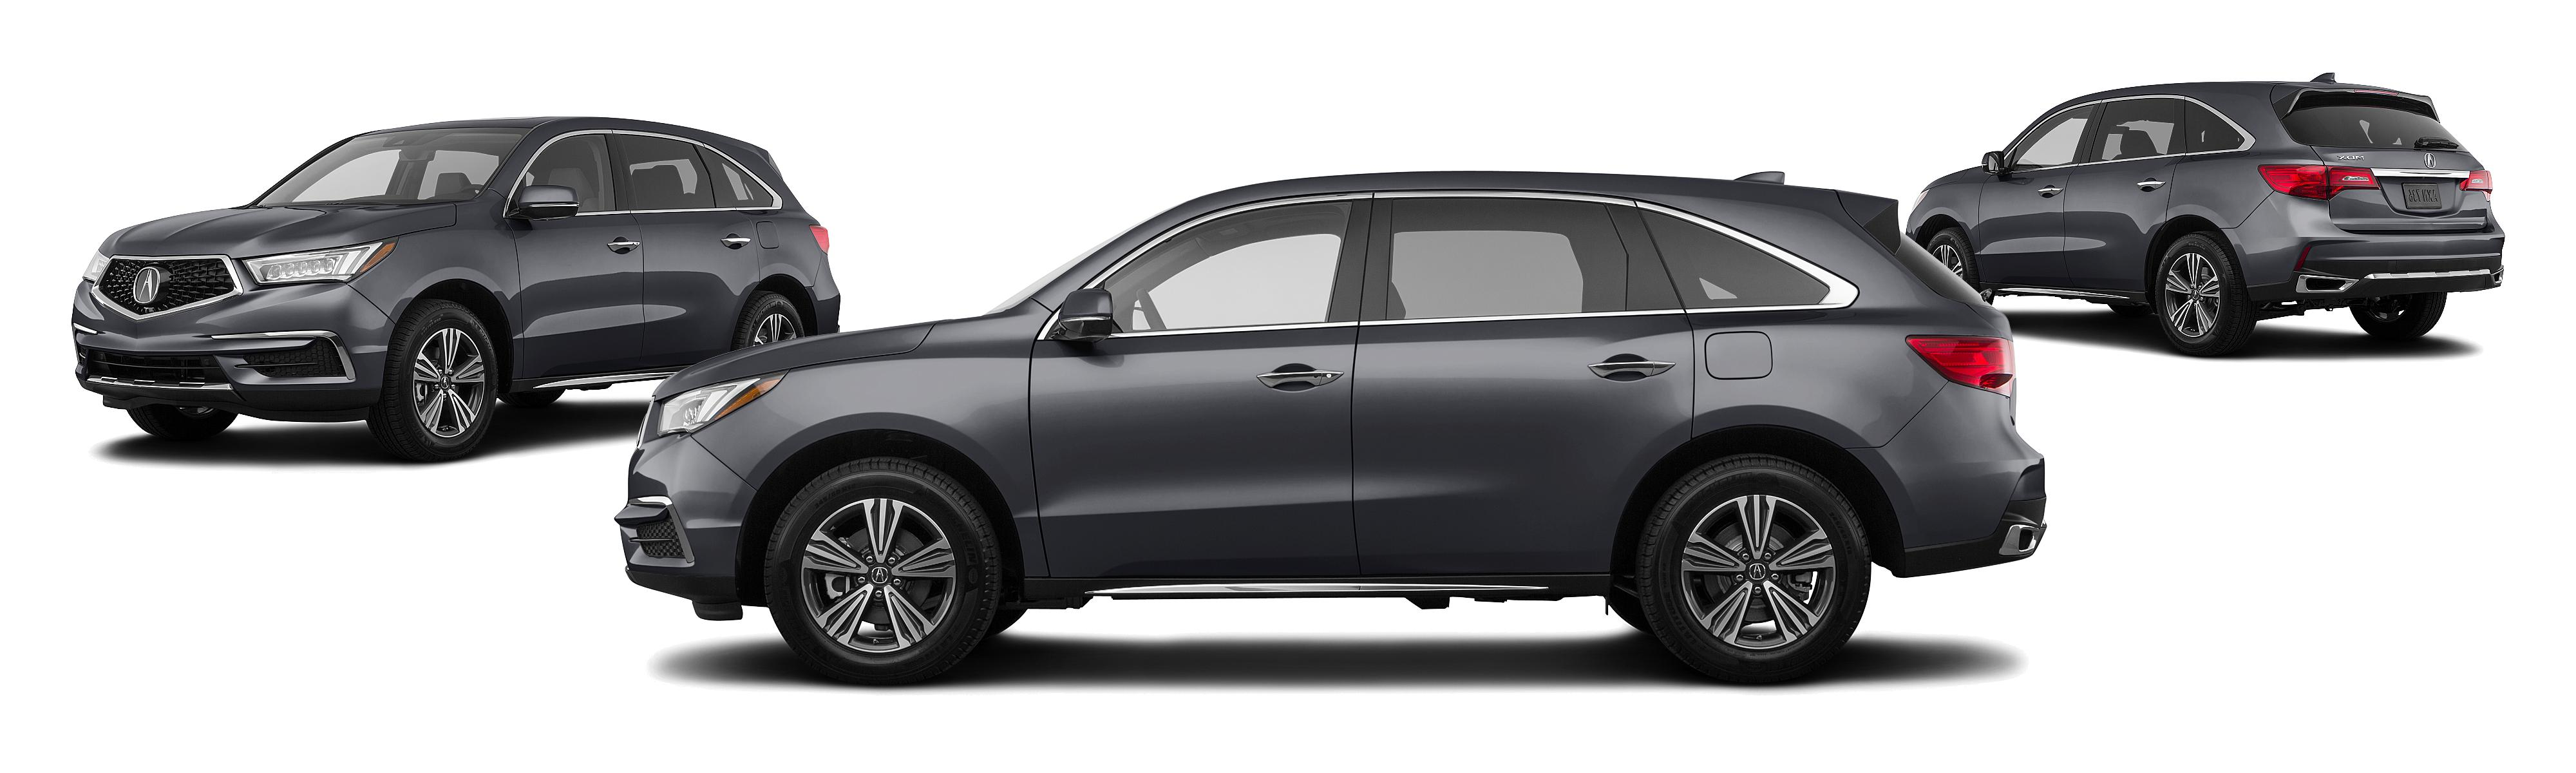 acura jose with modern blog hopkins for new a suv seven mdx san